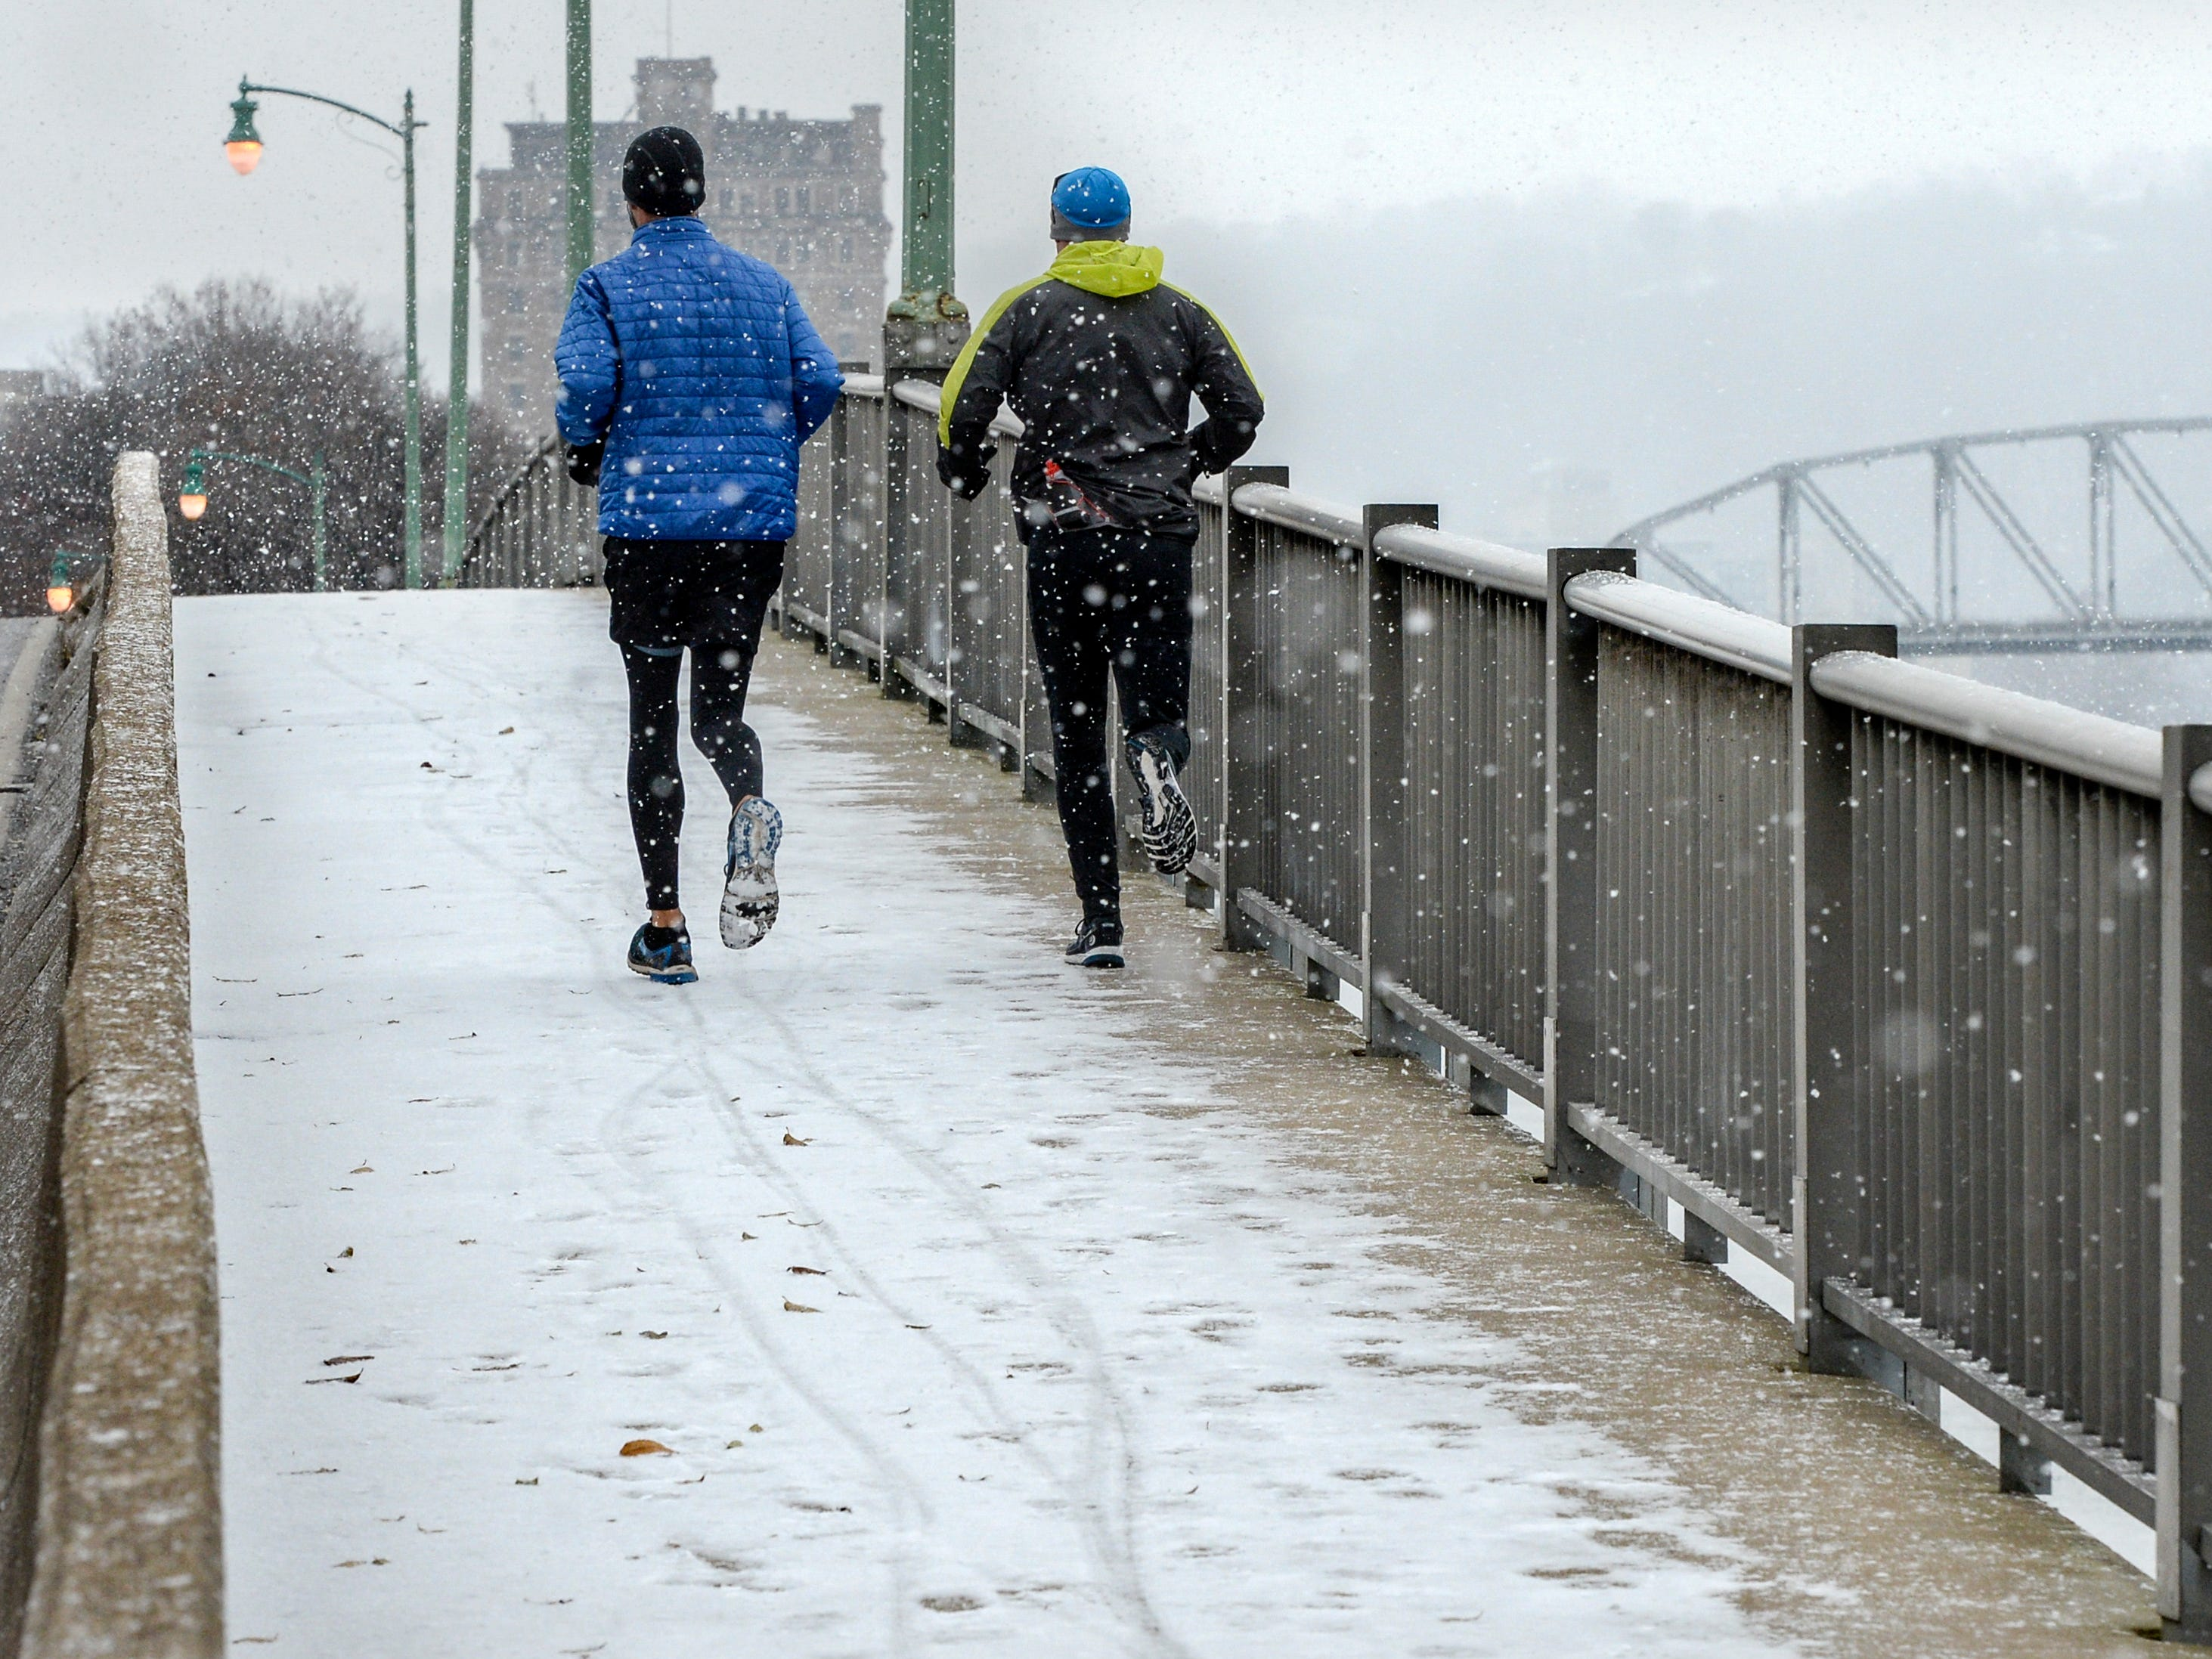 Runners cross the Elk River Bridge in Charleston, W.V., during a snow squall on Nov. 28, 2018.